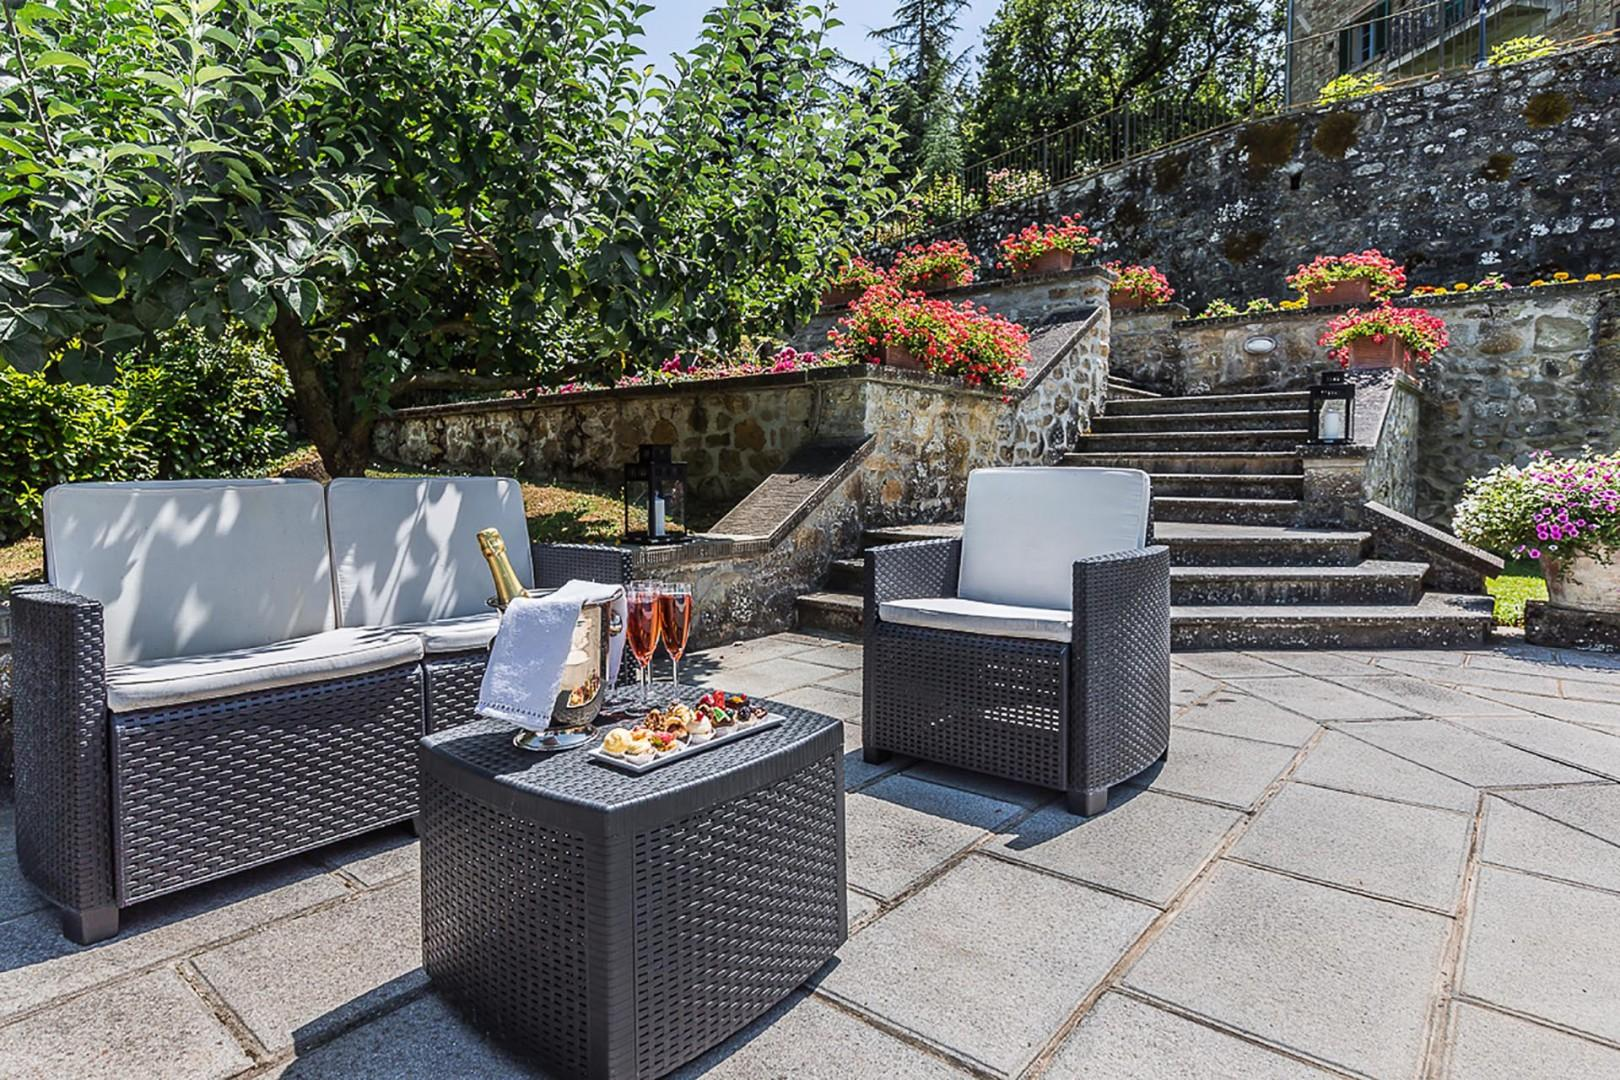 Enjoy the truly spectacular views from this outdoor seating area.